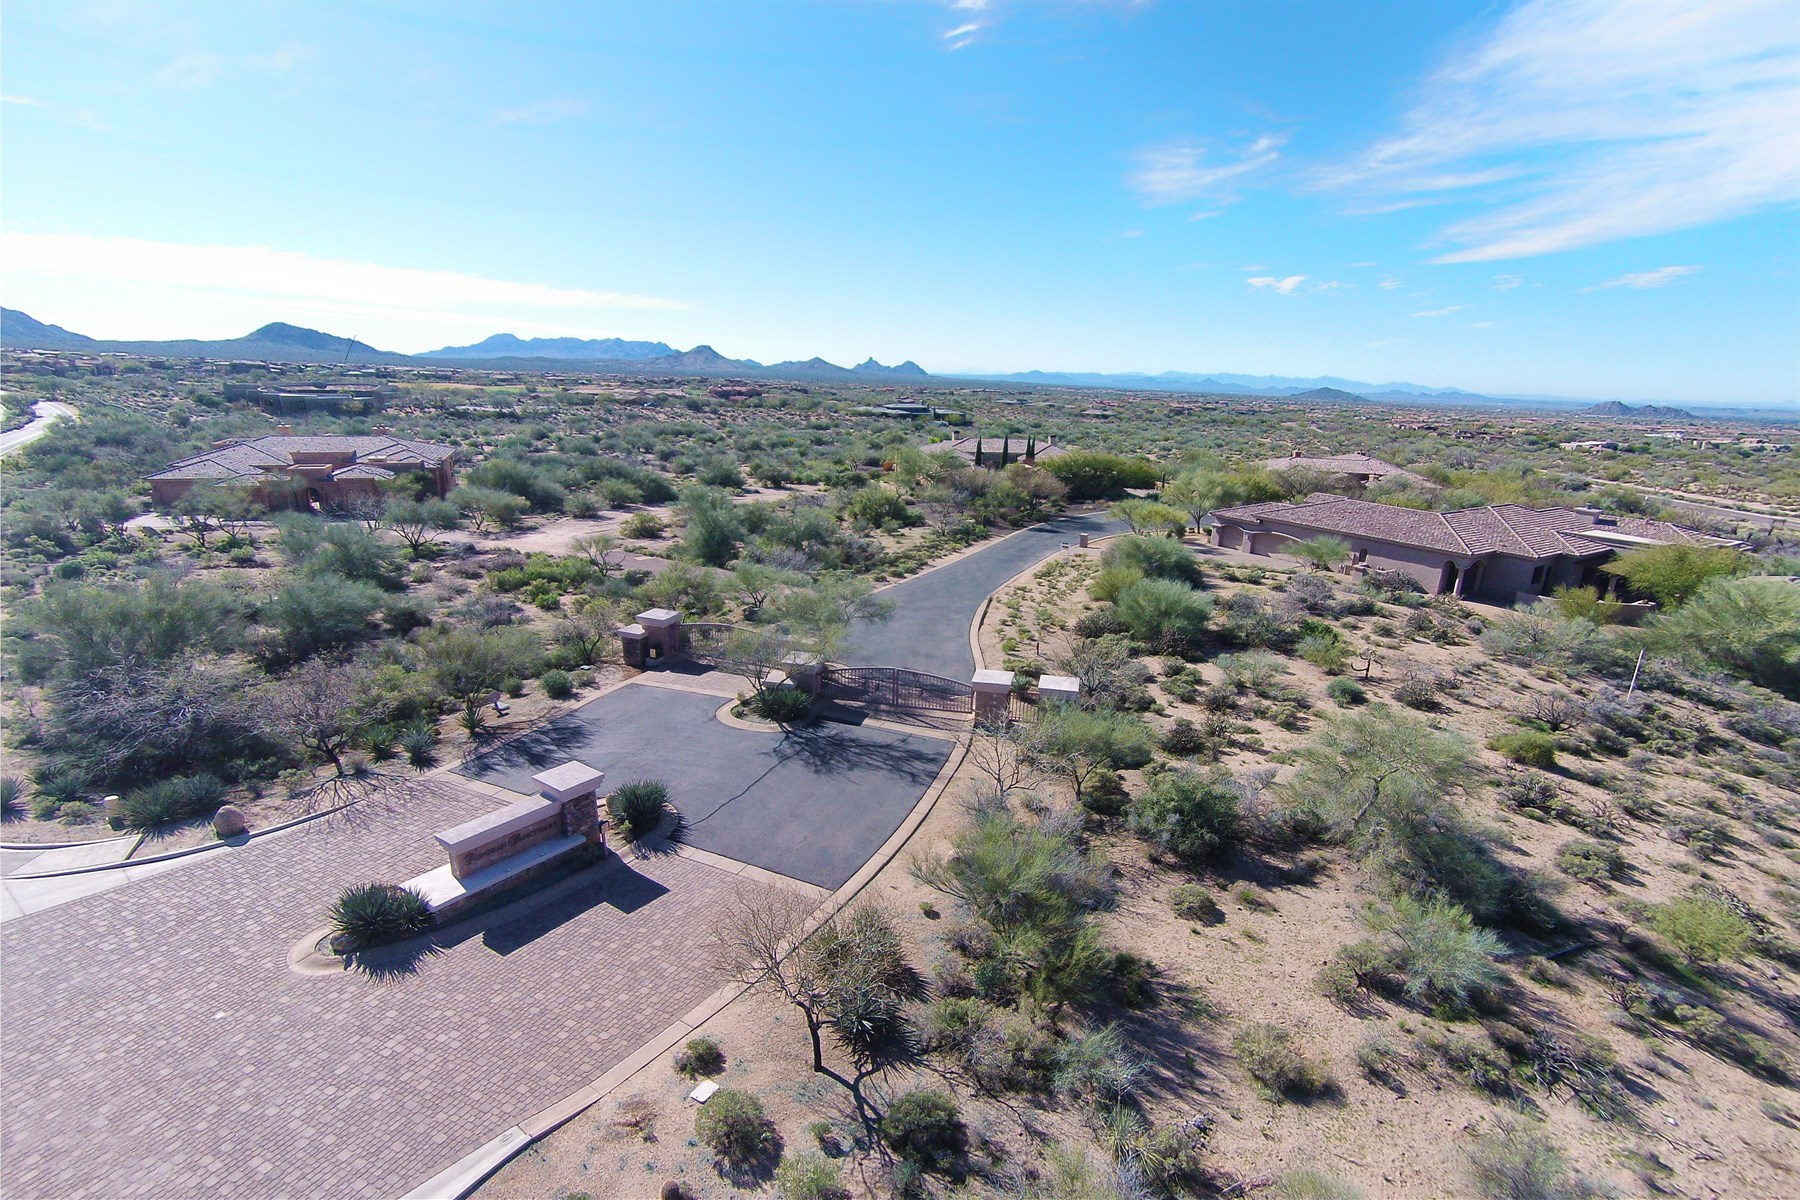 Terrain pour l Vente à Spacious Lot Located in a Gated Community 10619 E Rising Sun Drive 5 Scottsdale, Arizona 85262 États-Unis